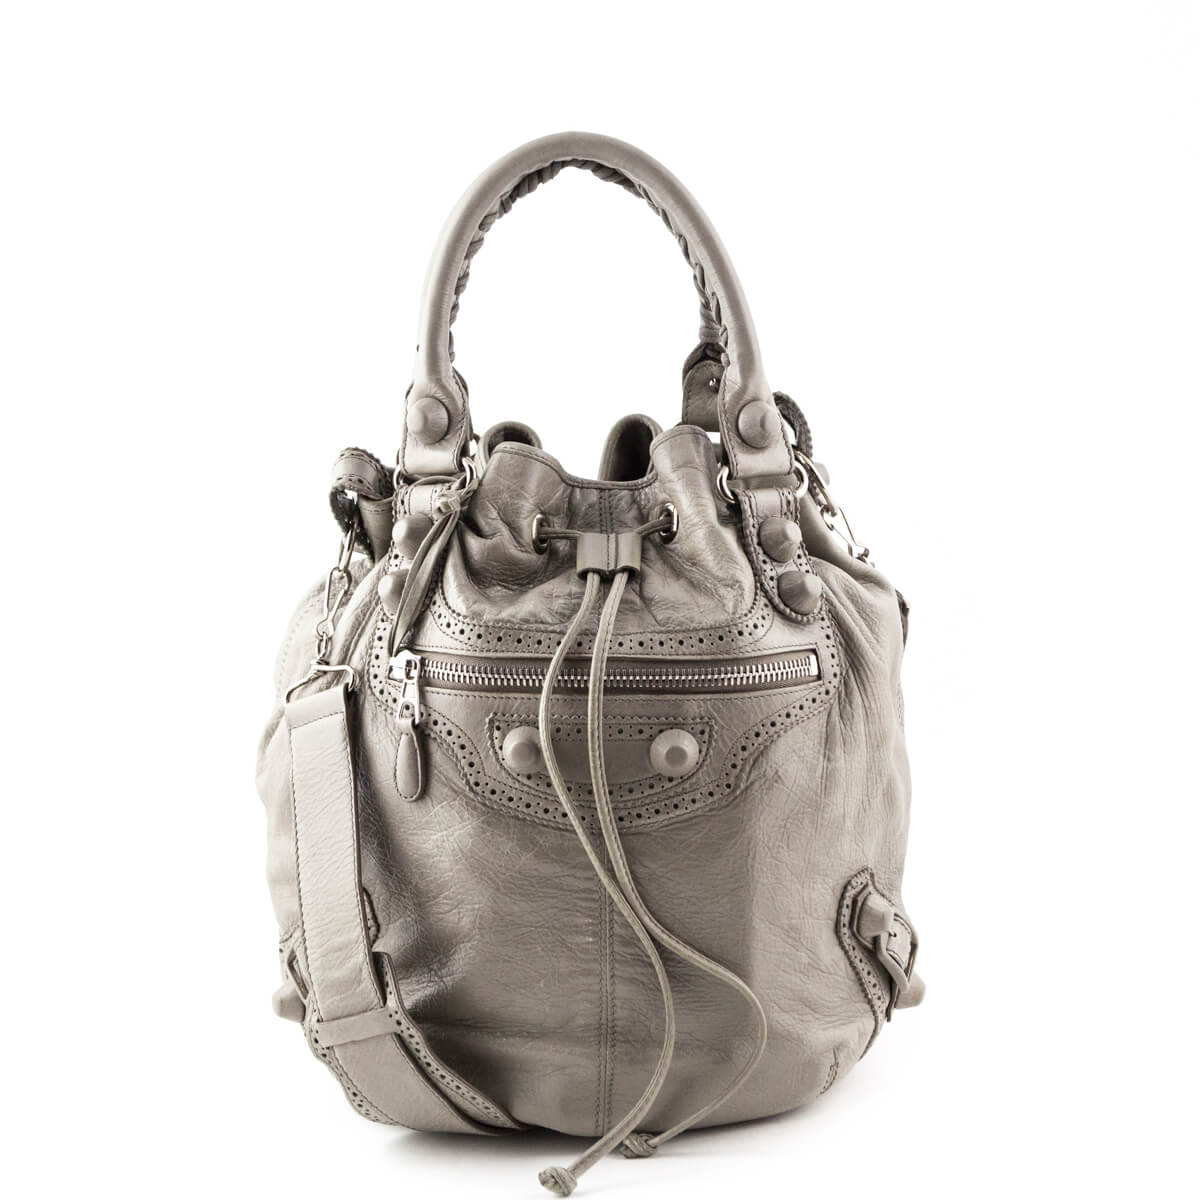 Balenciaga Galet Lambskin Giant Hardware Pom Pon Bag - LOVE that BAG -  Preowned Authentic Designer ... 17c12d4a7fd05